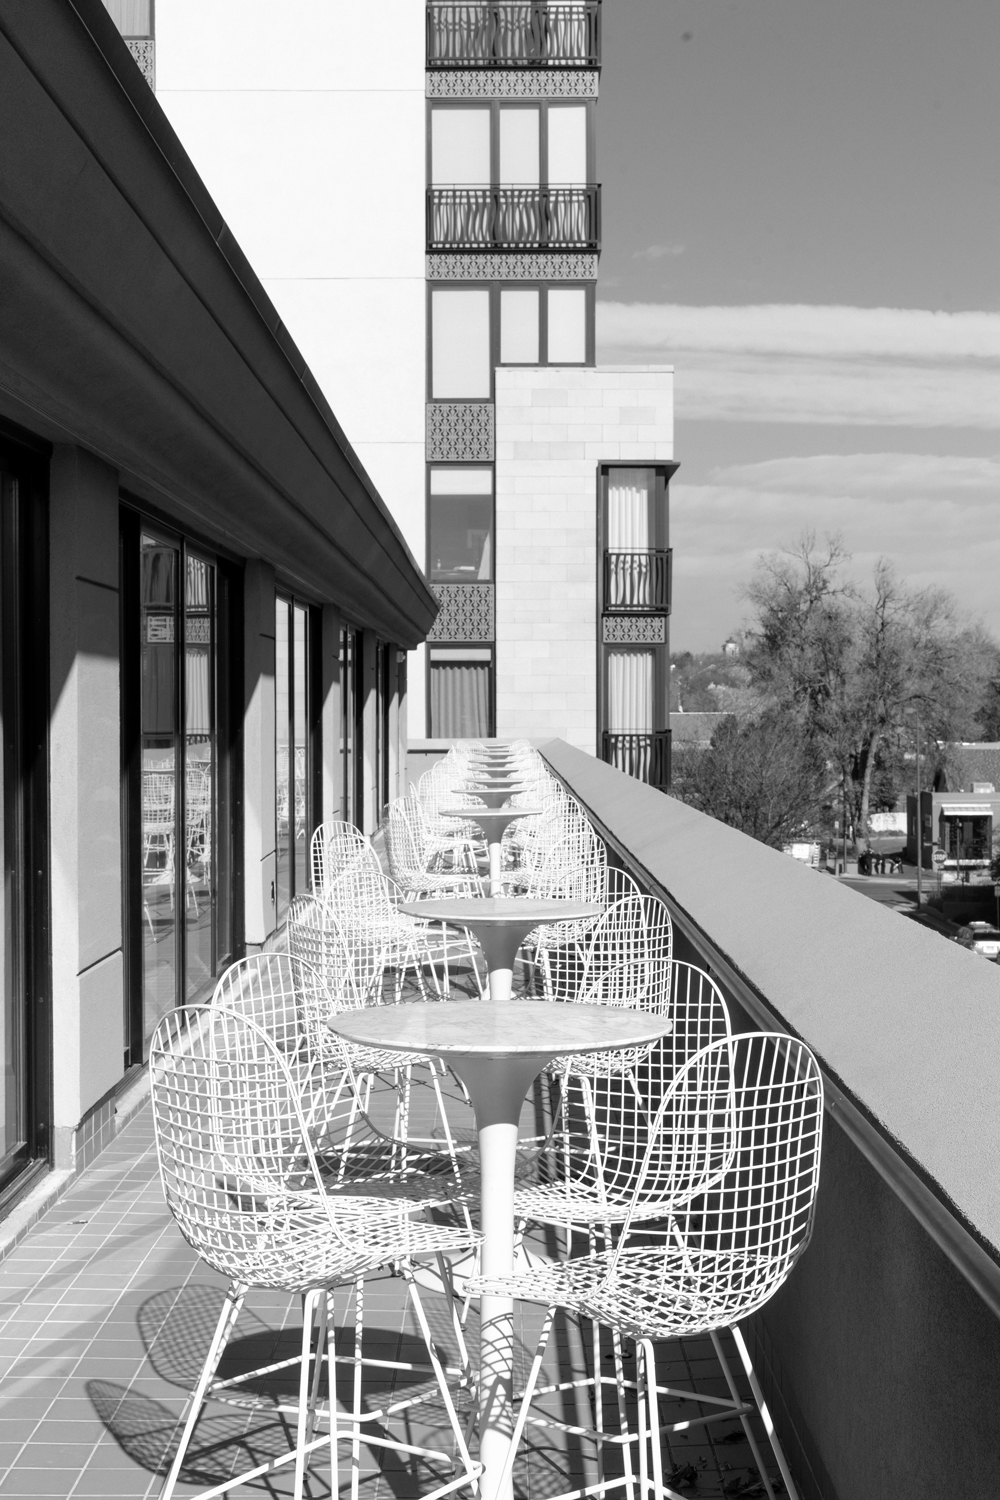 private-balcony-comlumbine-bw.jpg